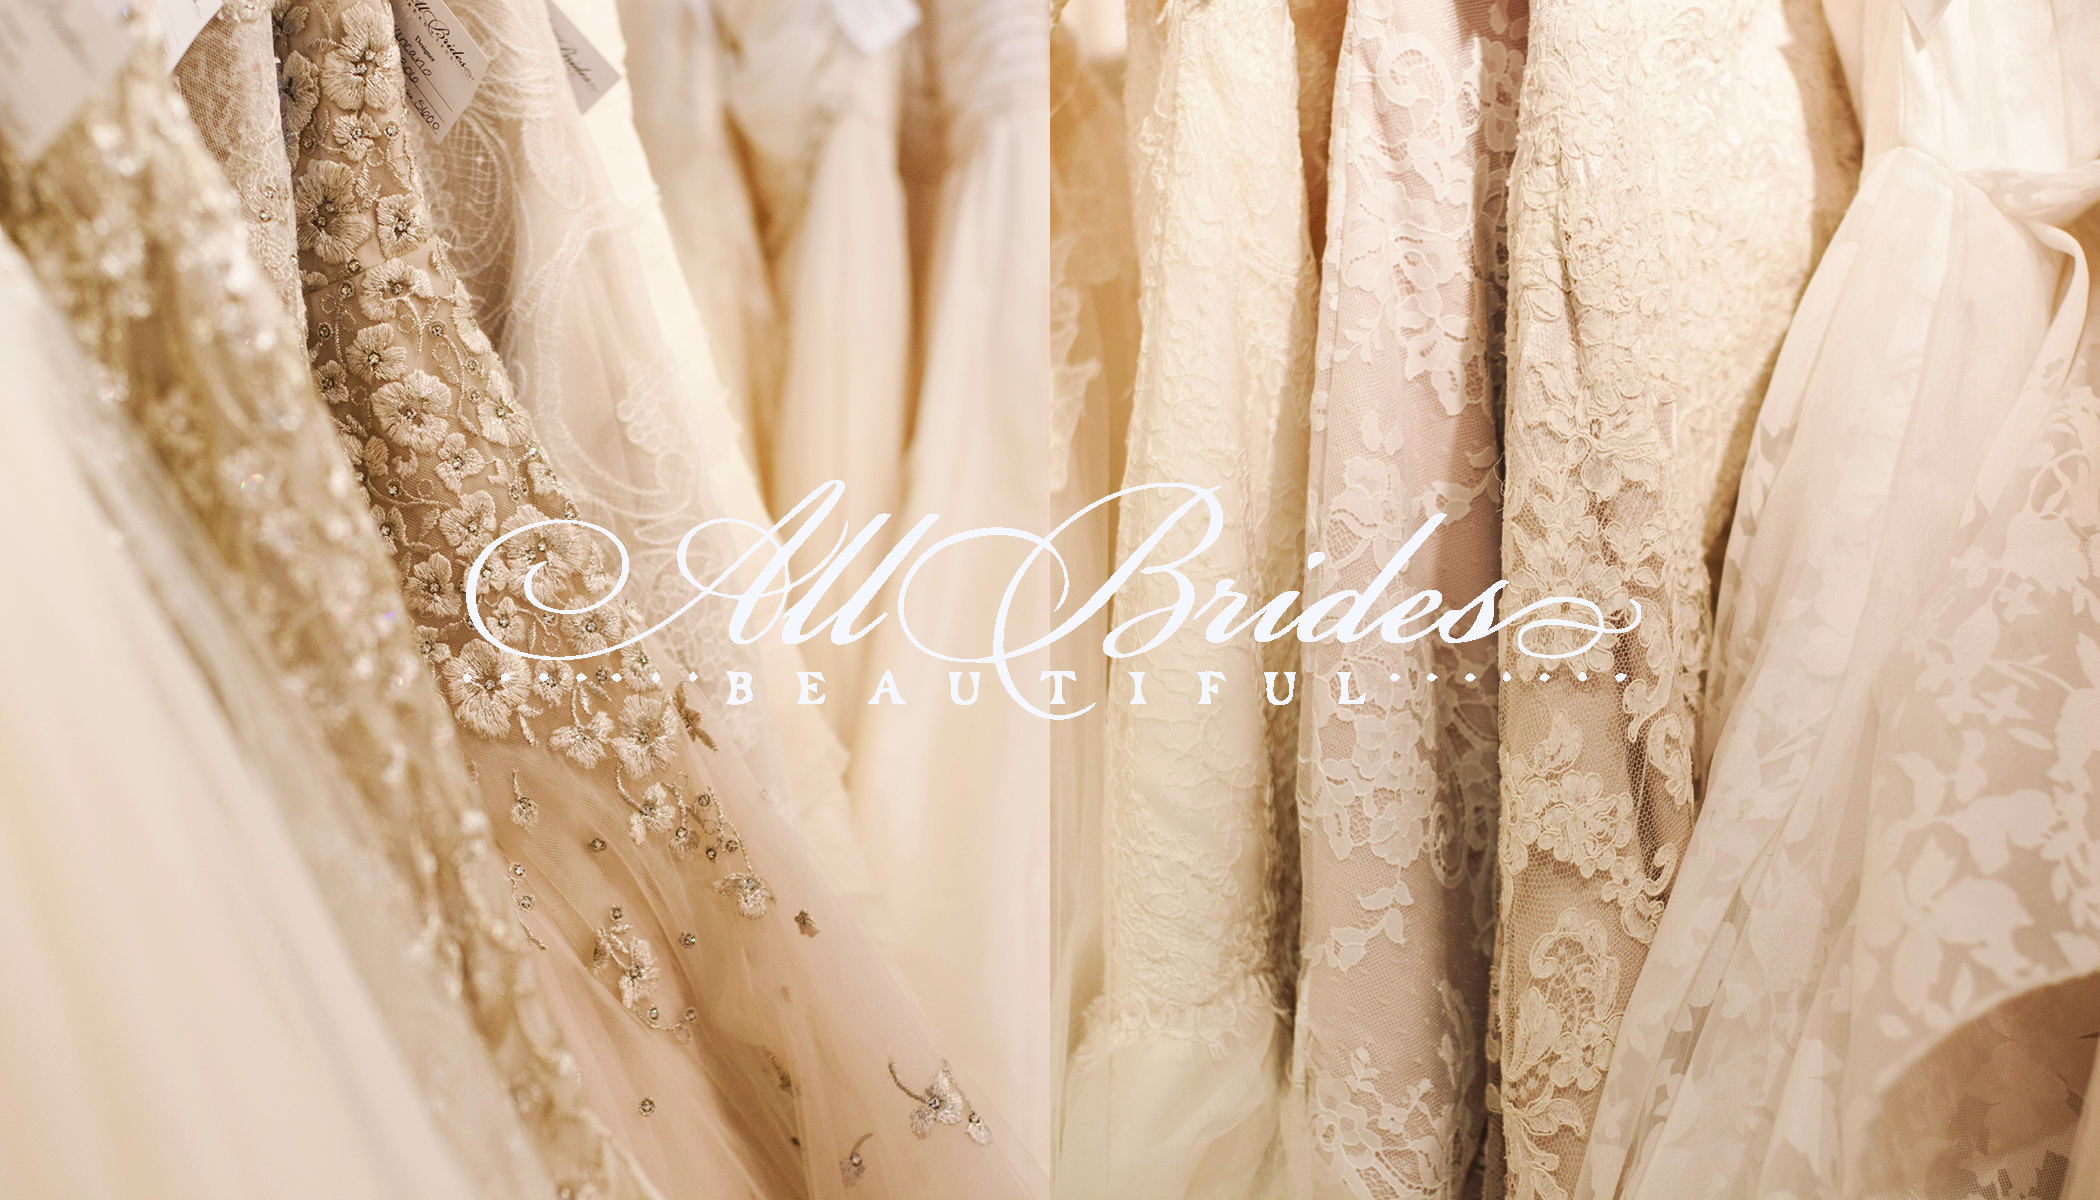 Cheap Wedding Dresses Cleveland Ohio: Close Up Of Lace Dresses